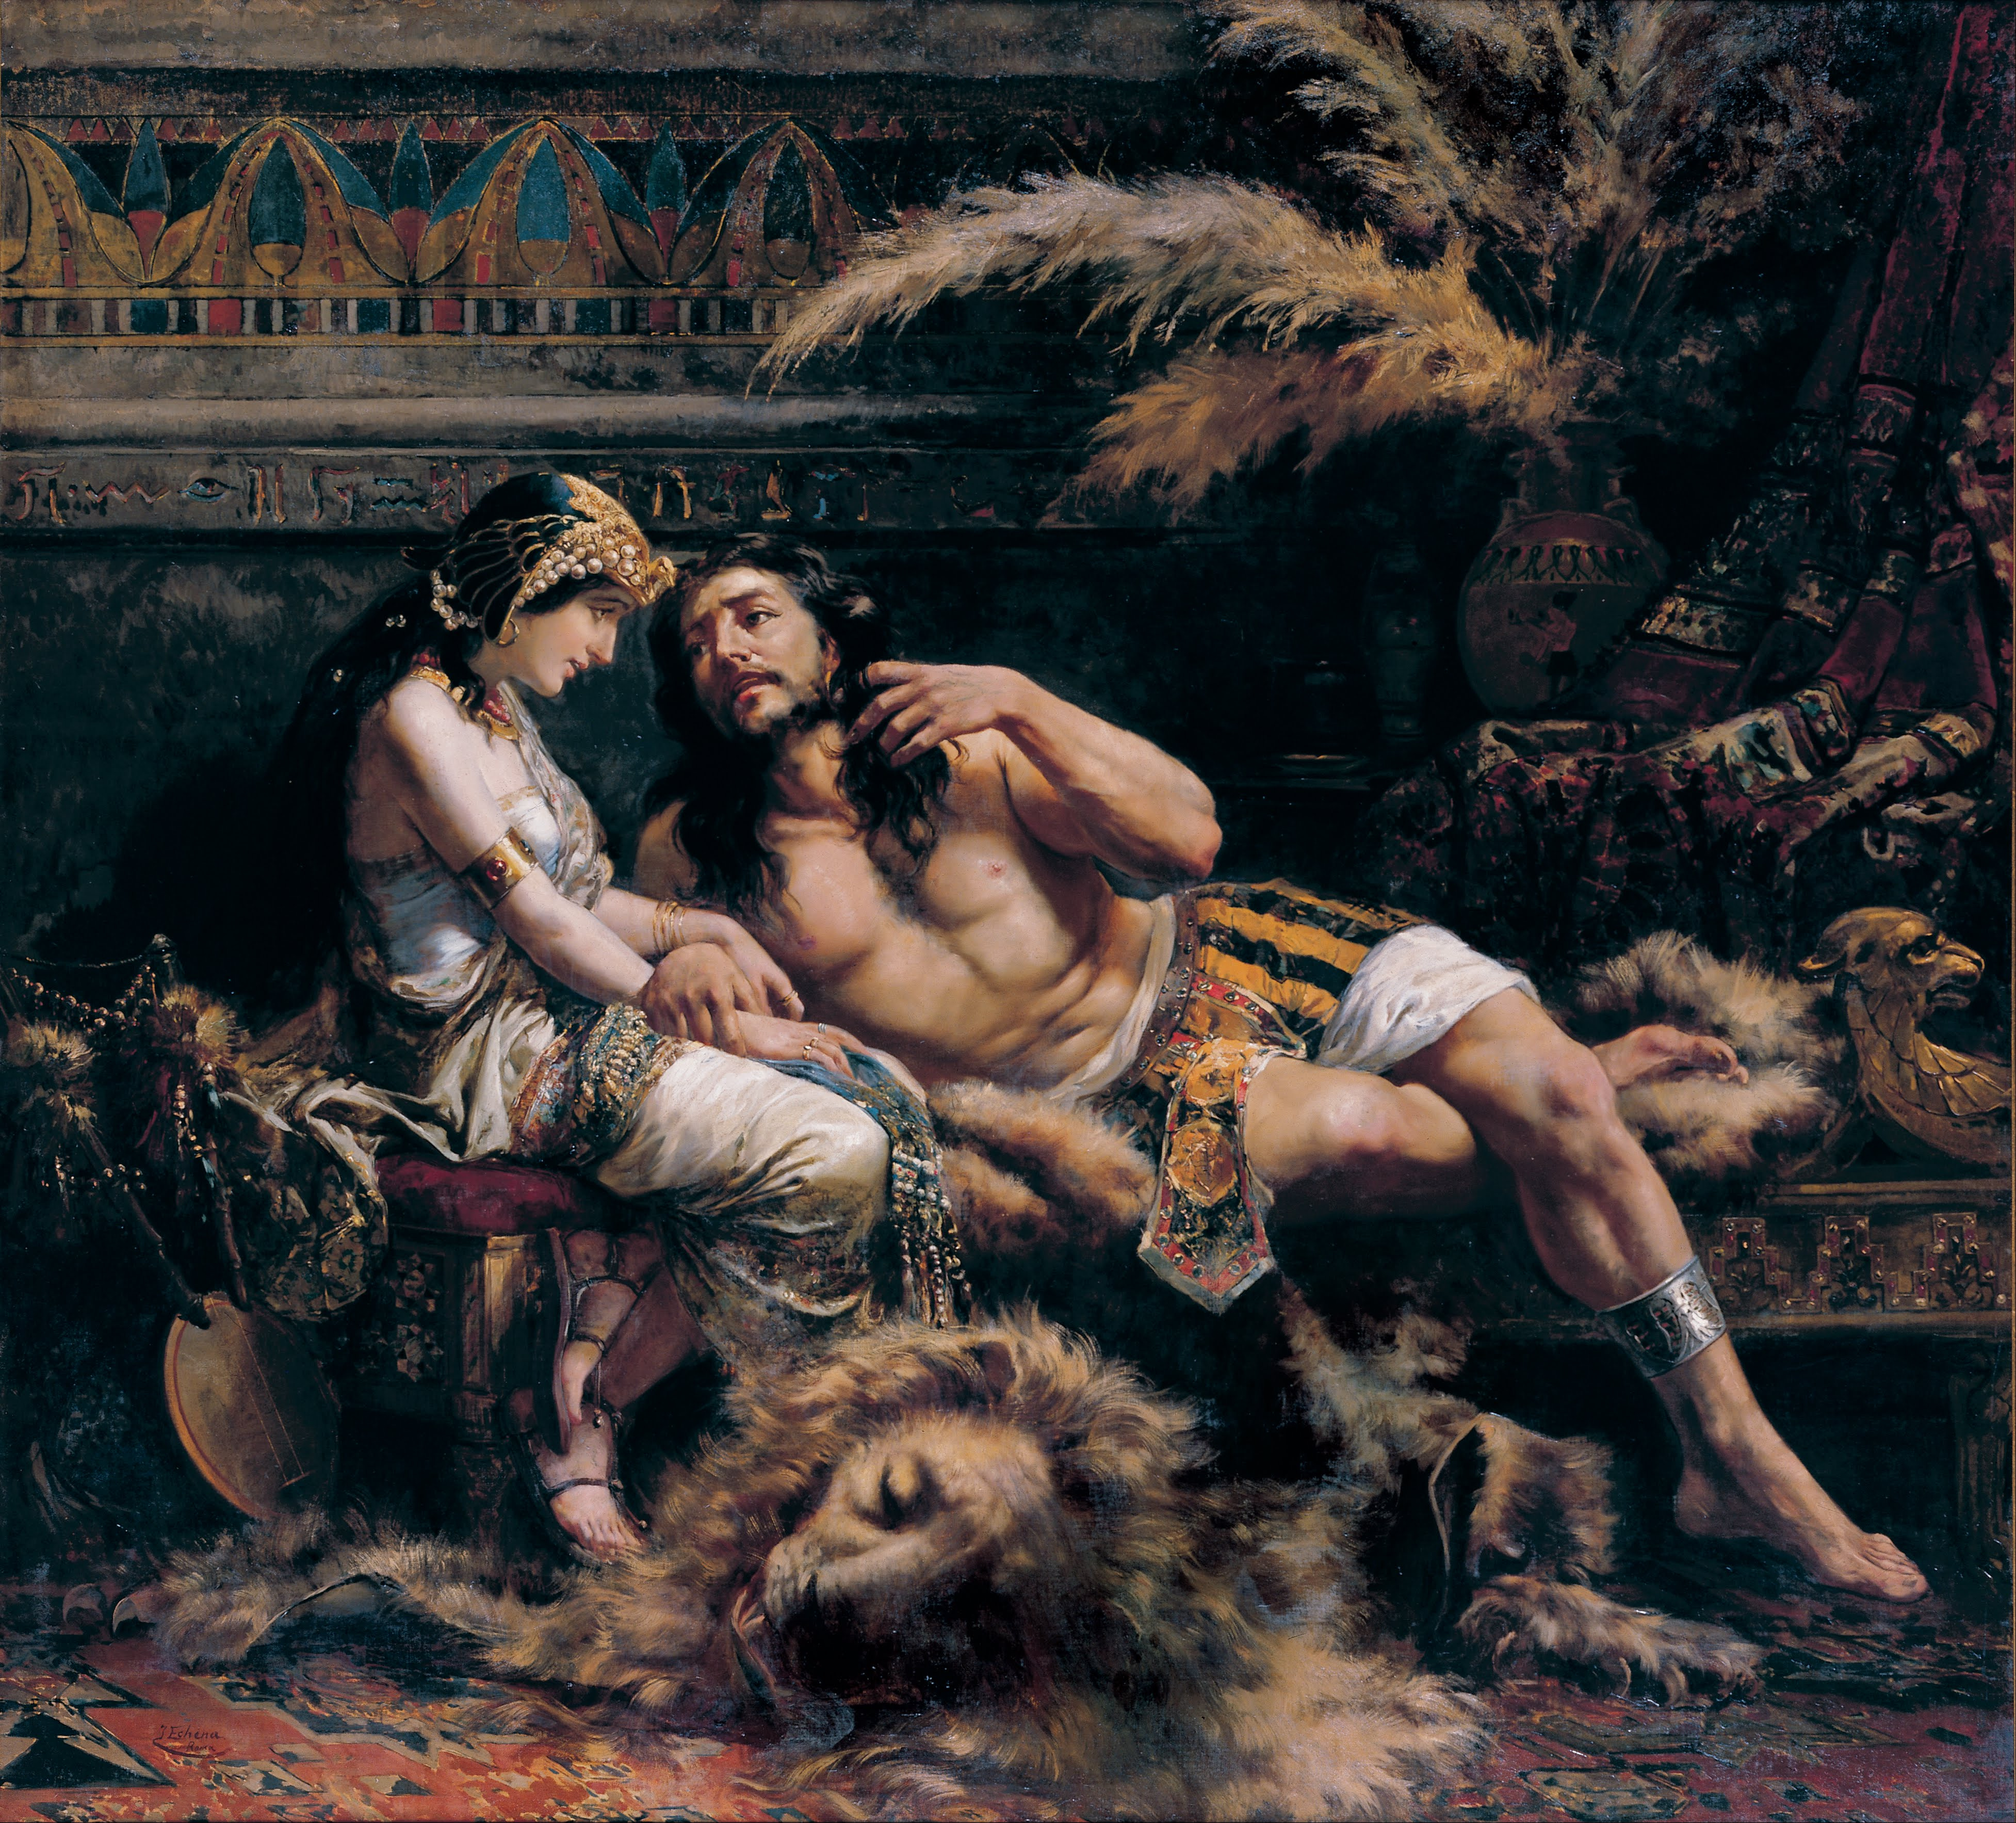 Samson and Delilah - most famous painters